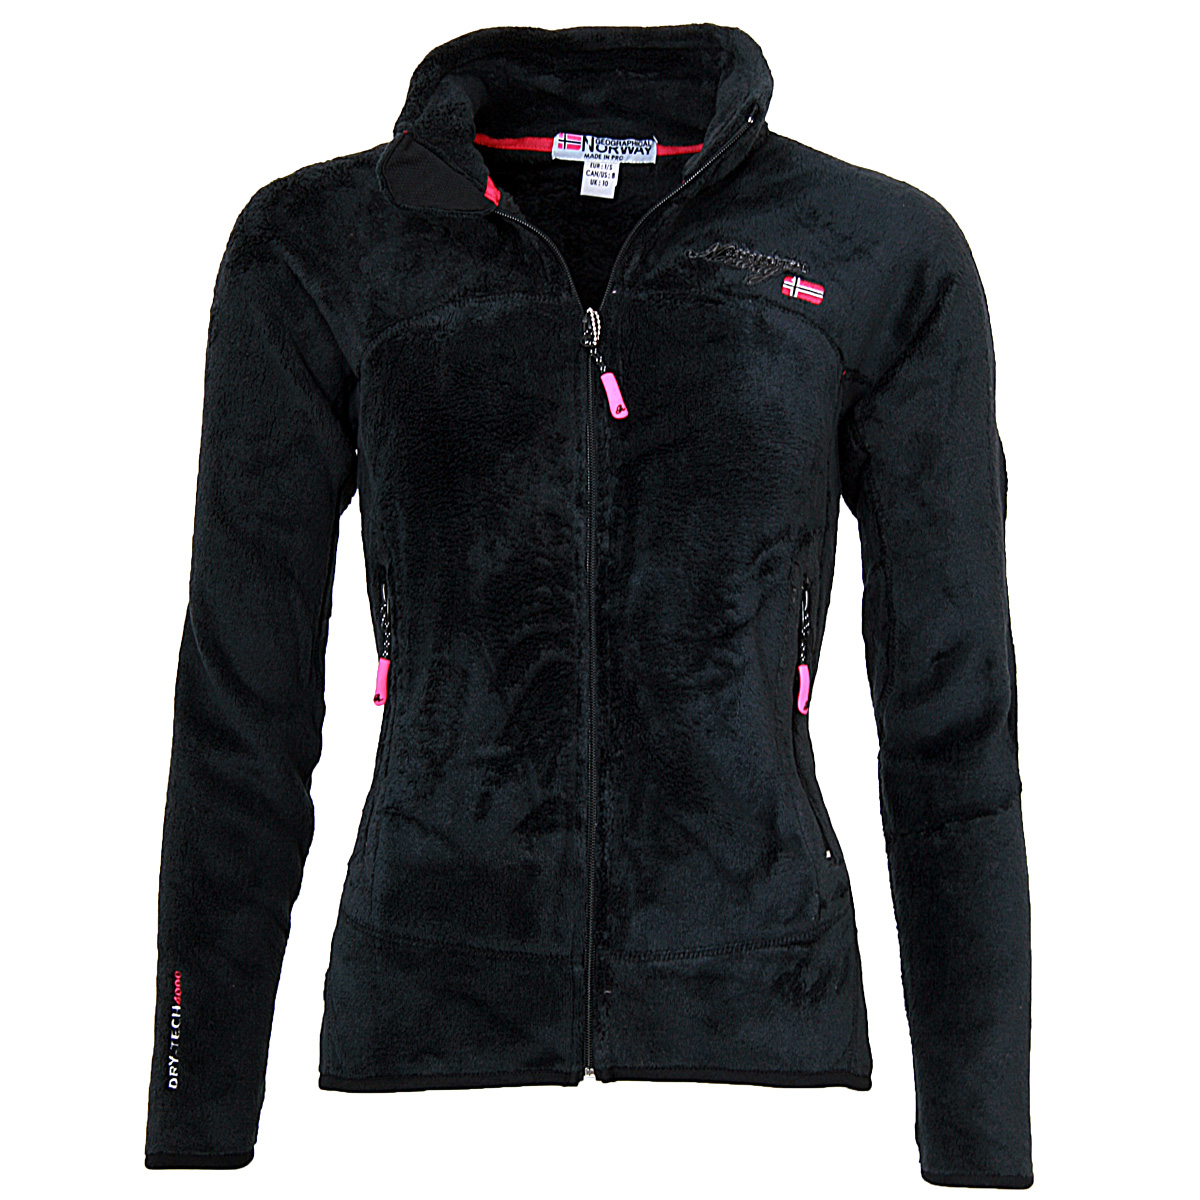 geographical norway damen fleece sweatjacke teddy fleece jacke bergangs jacke ebay. Black Bedroom Furniture Sets. Home Design Ideas